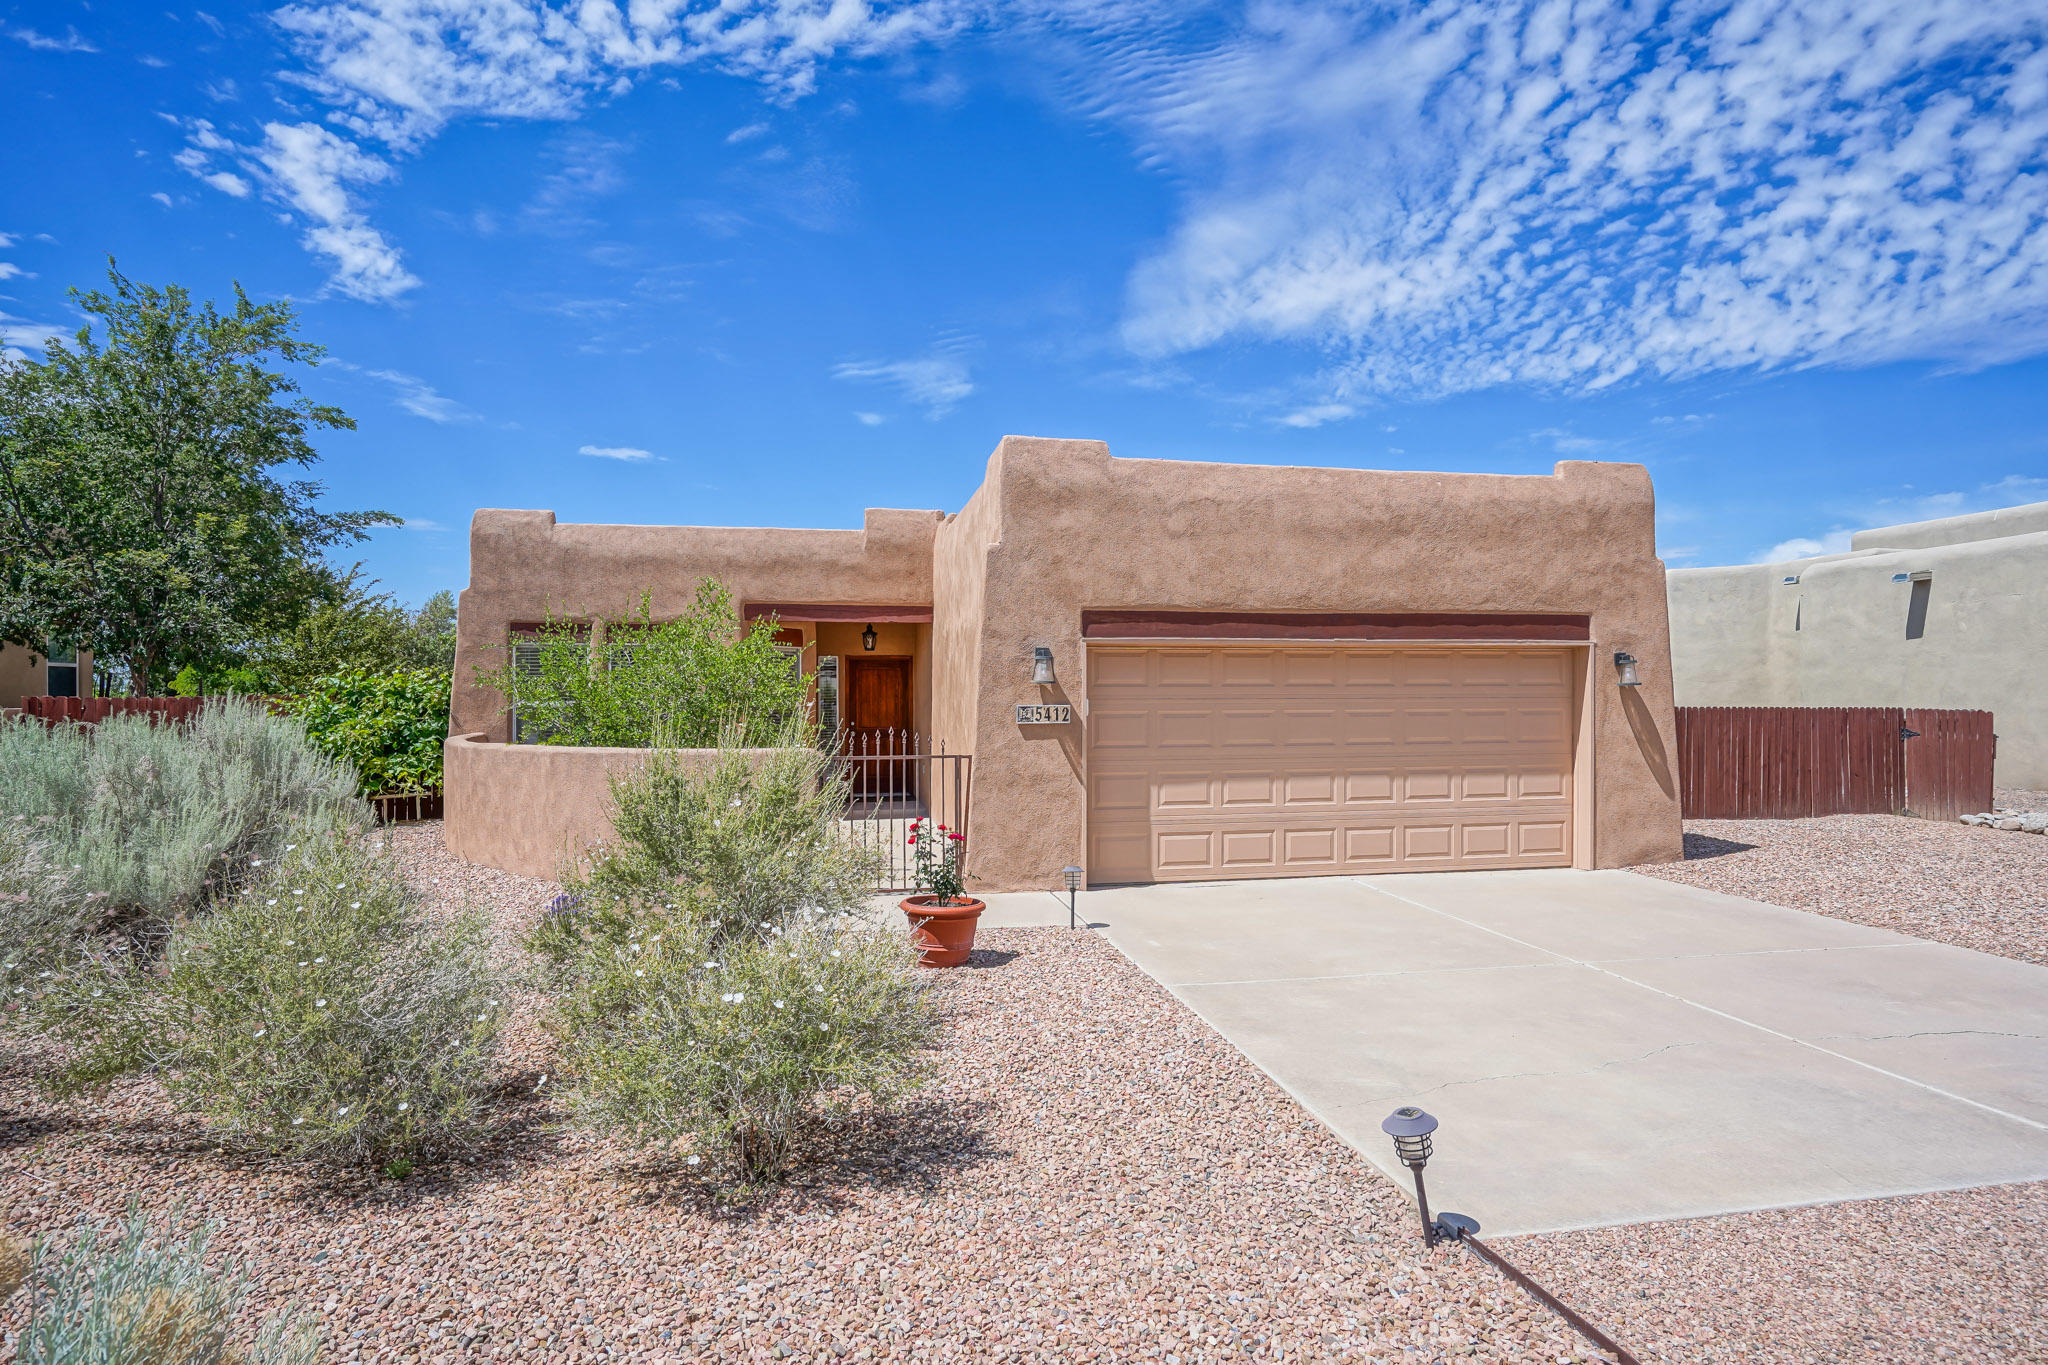 Open, Elegant, Renovated 'I live in New Mexico' Casa 1/2 acre w/ rustic sandblasted beamed wood ceilings, Kiva fireplace, niches, gated courtyard flagstone patio, covered back patio, wood great room floors. Gorgeous granite Kitchen counters & tile backsplash, stainless steel appliances, tile floors. Owner's Suite; double vessel sinks, granite countertops, jetted soaking tub plus separate shower. Second bath; granite countertops & vessel sink. Long views from backyard. No HOA! Backyard access, bring your RV, Boat, ATV! Home extensively updated in 2016: new septic, lighting, flooring, garage door, doors, paint, finishes, stucco and new HVAC. Prof. Landscape w/ drip irrigation. Lightly lived in, meticulously maintained. MULTIPLE OFFERS RECEIVED - SUBMIT HIGHEST & BEST THIS AM.